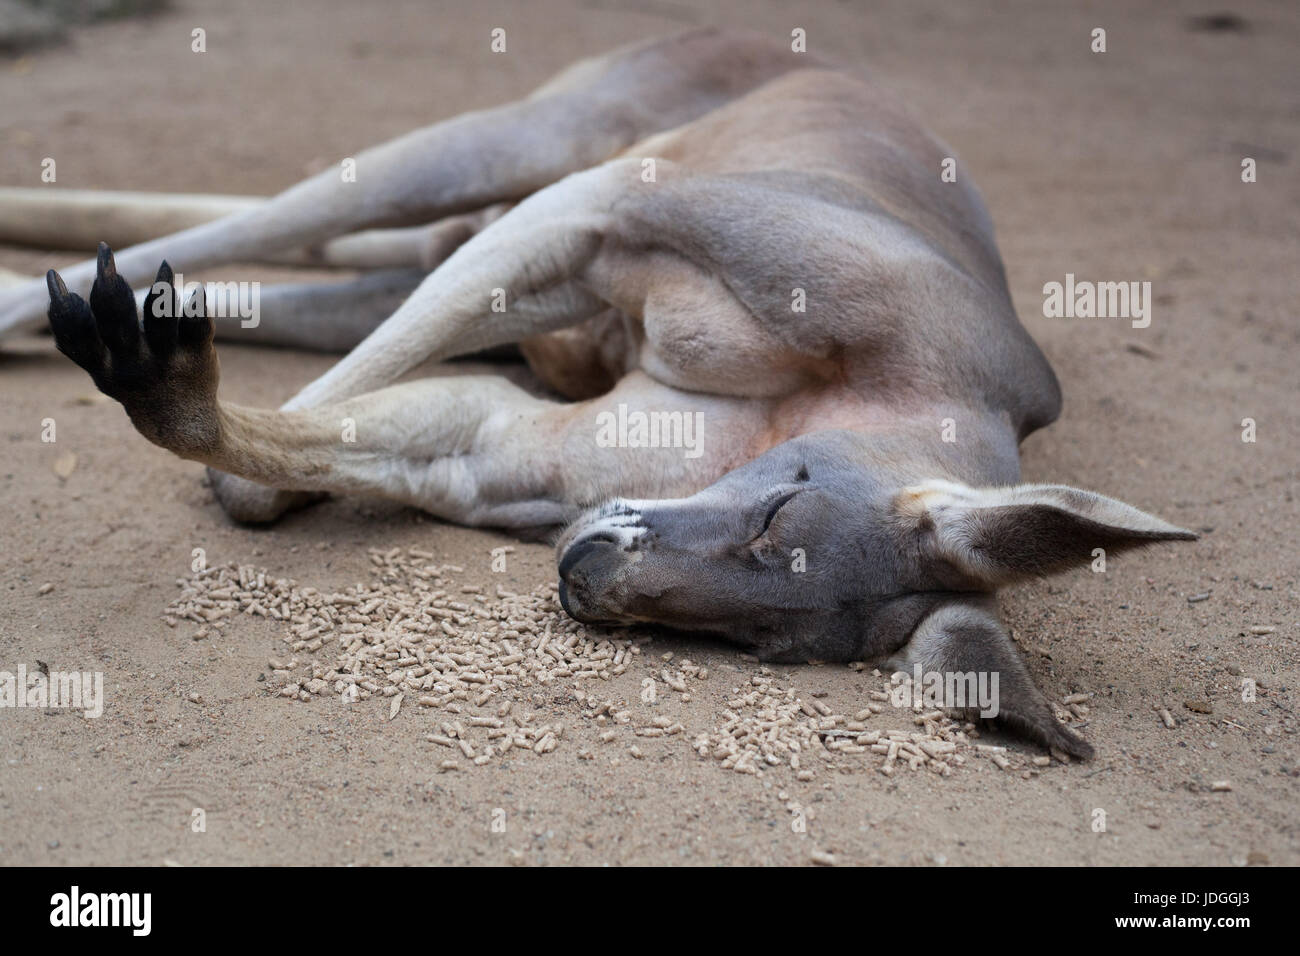 Kangourou rouge dormir sur un tas de nourriture dans Currumbin Wildlife Sanctuary, Australie Photo Stock